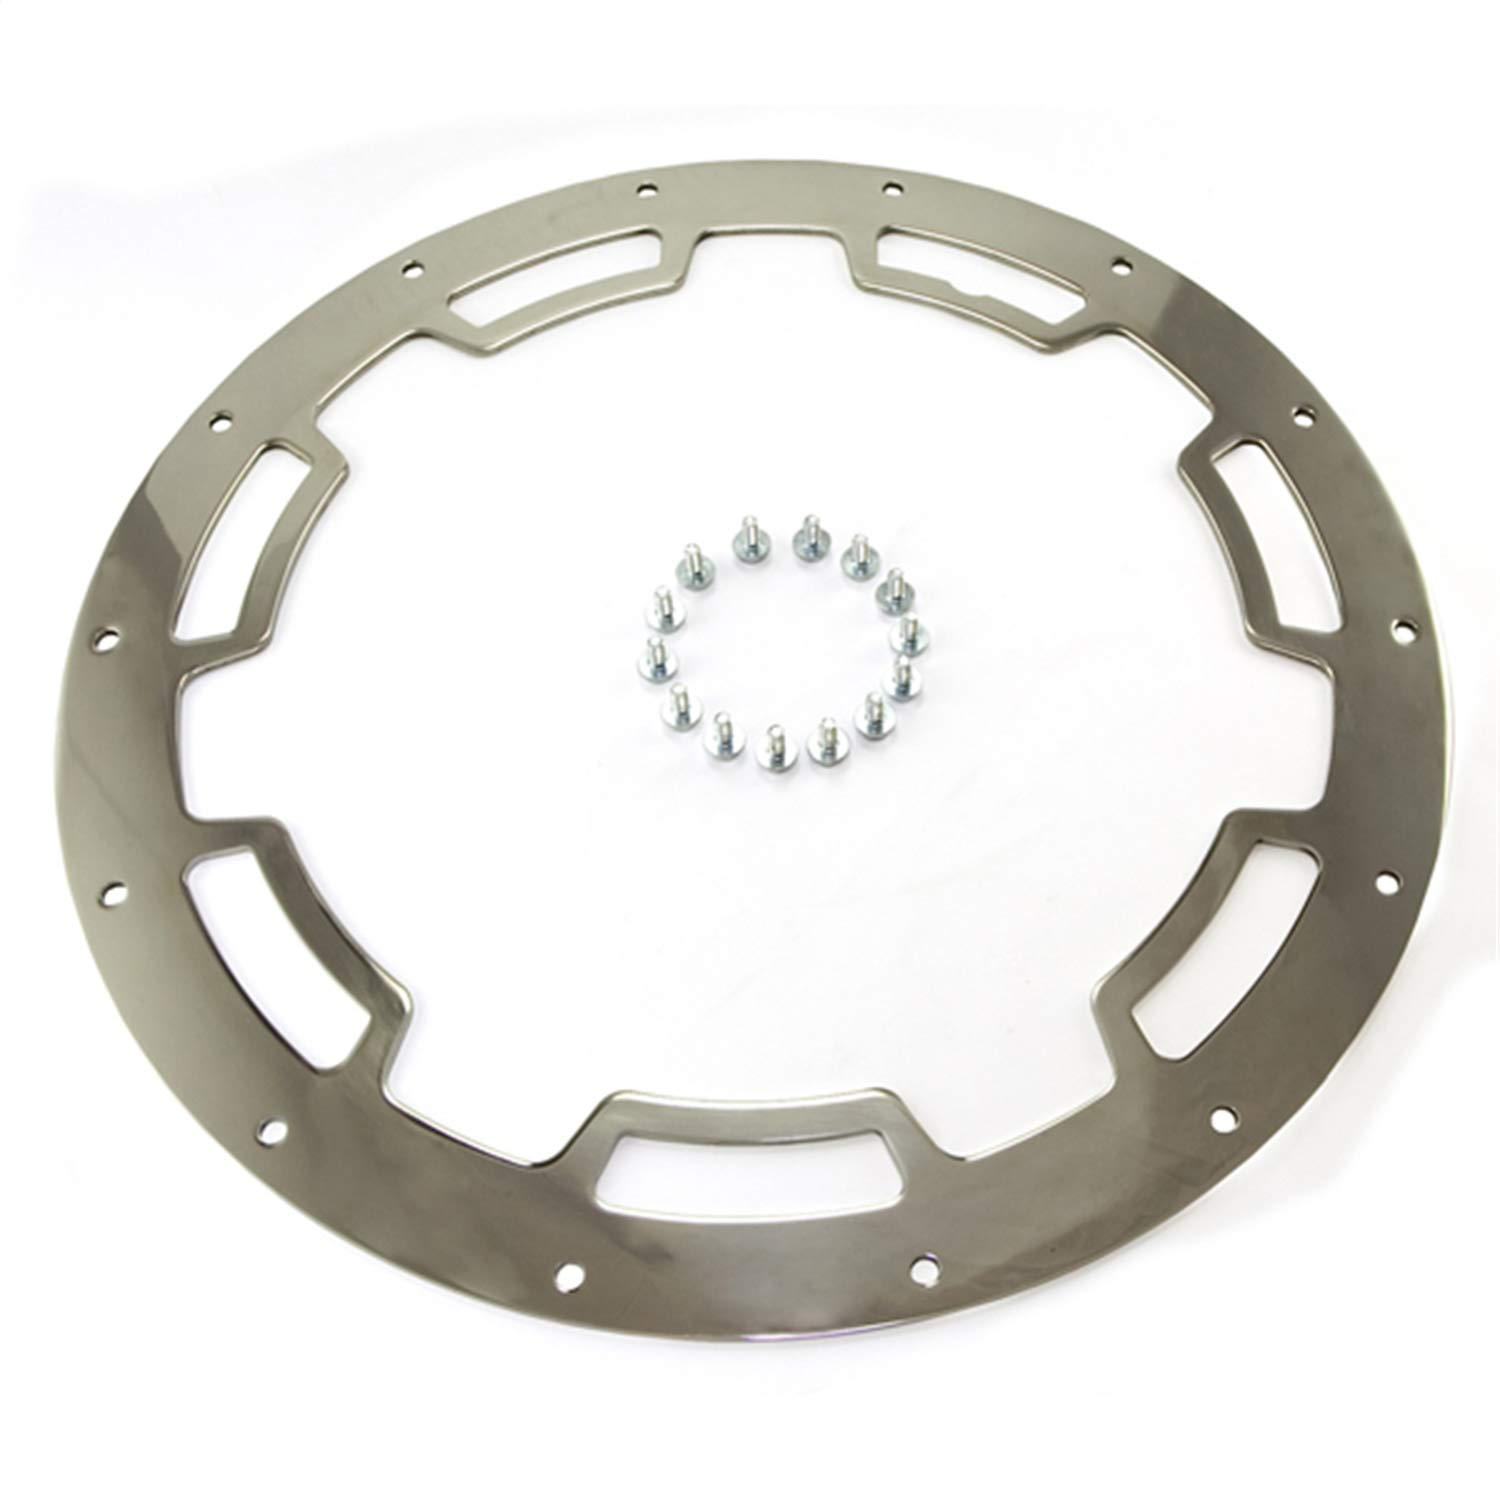 """Rugged Ridge 15250.01 Rim Protector for 17"""" X 9"""" Polished Stainless Steel Aluminum Wheel"""